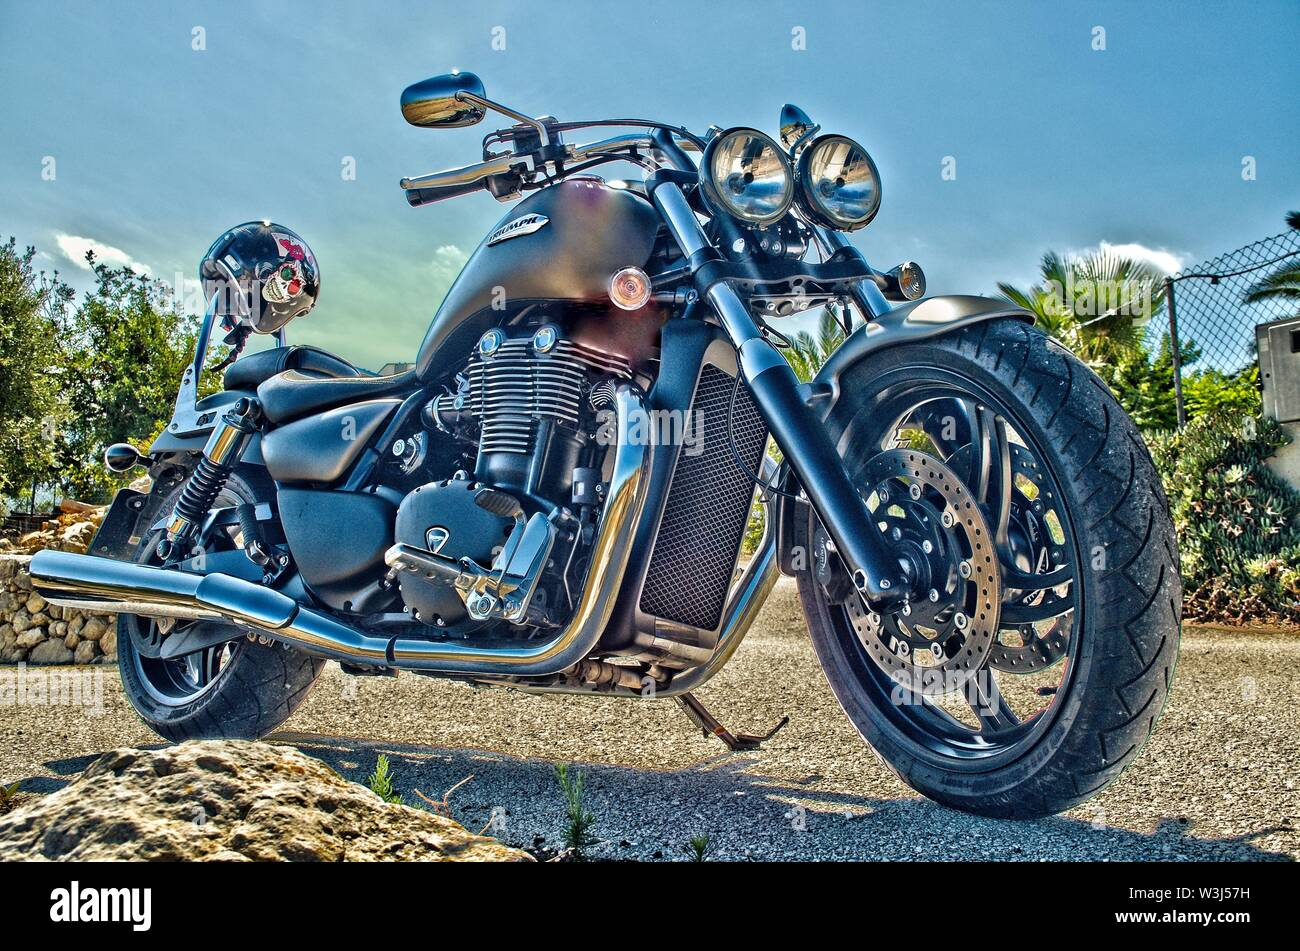 dc8a4a14 Triumph No People Stock Photos & Triumph No People Stock Images - Alamy